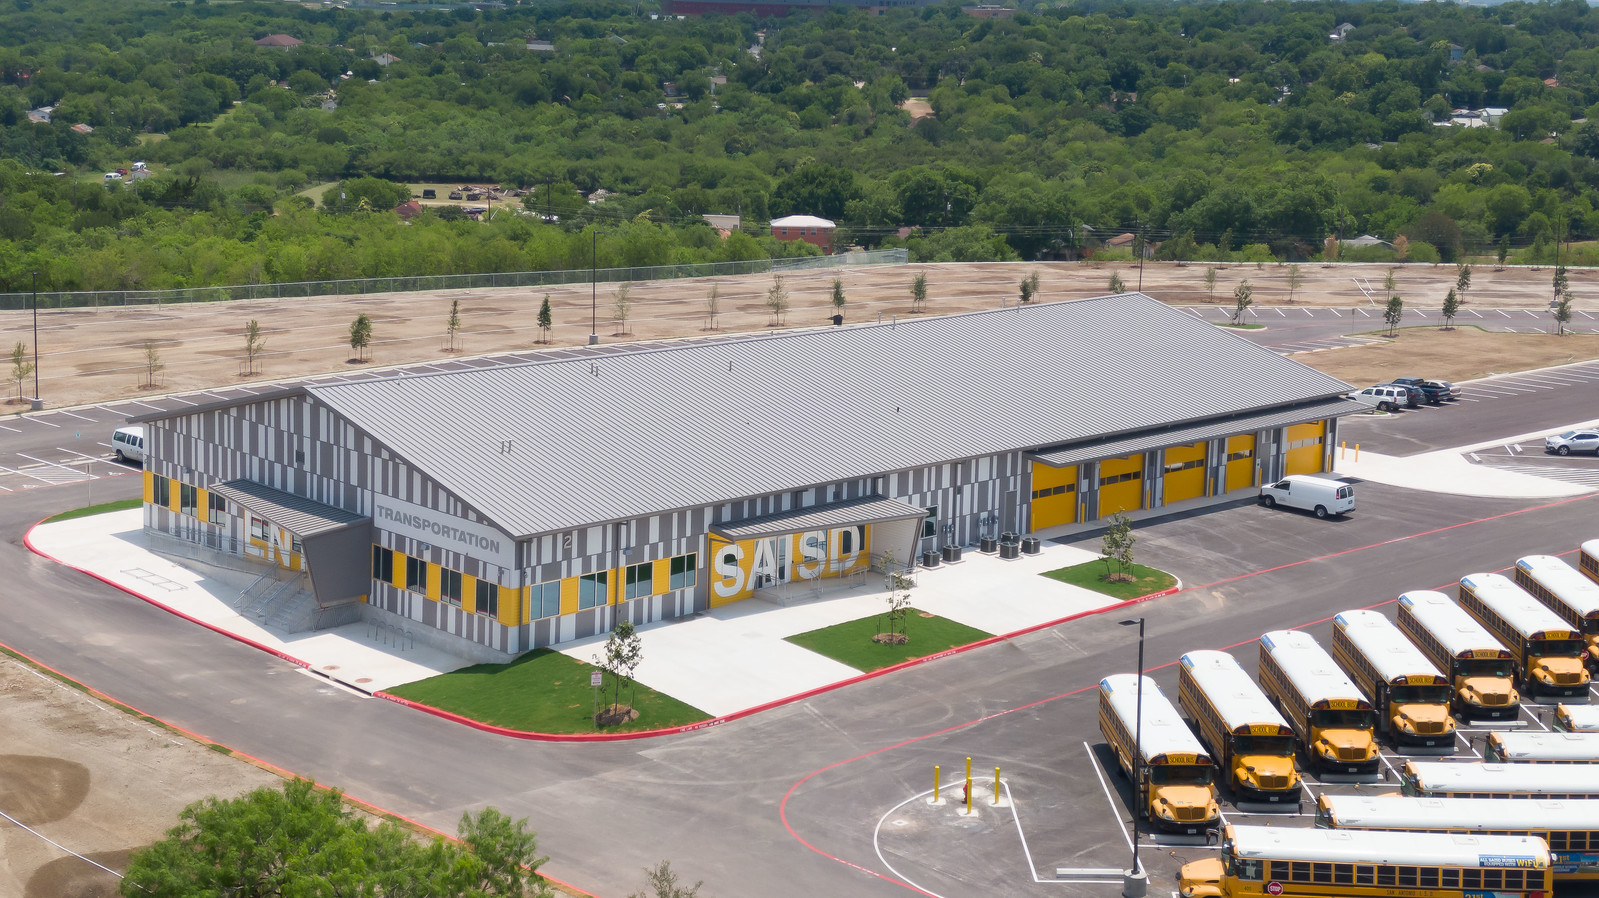 SAISD Transportation Center